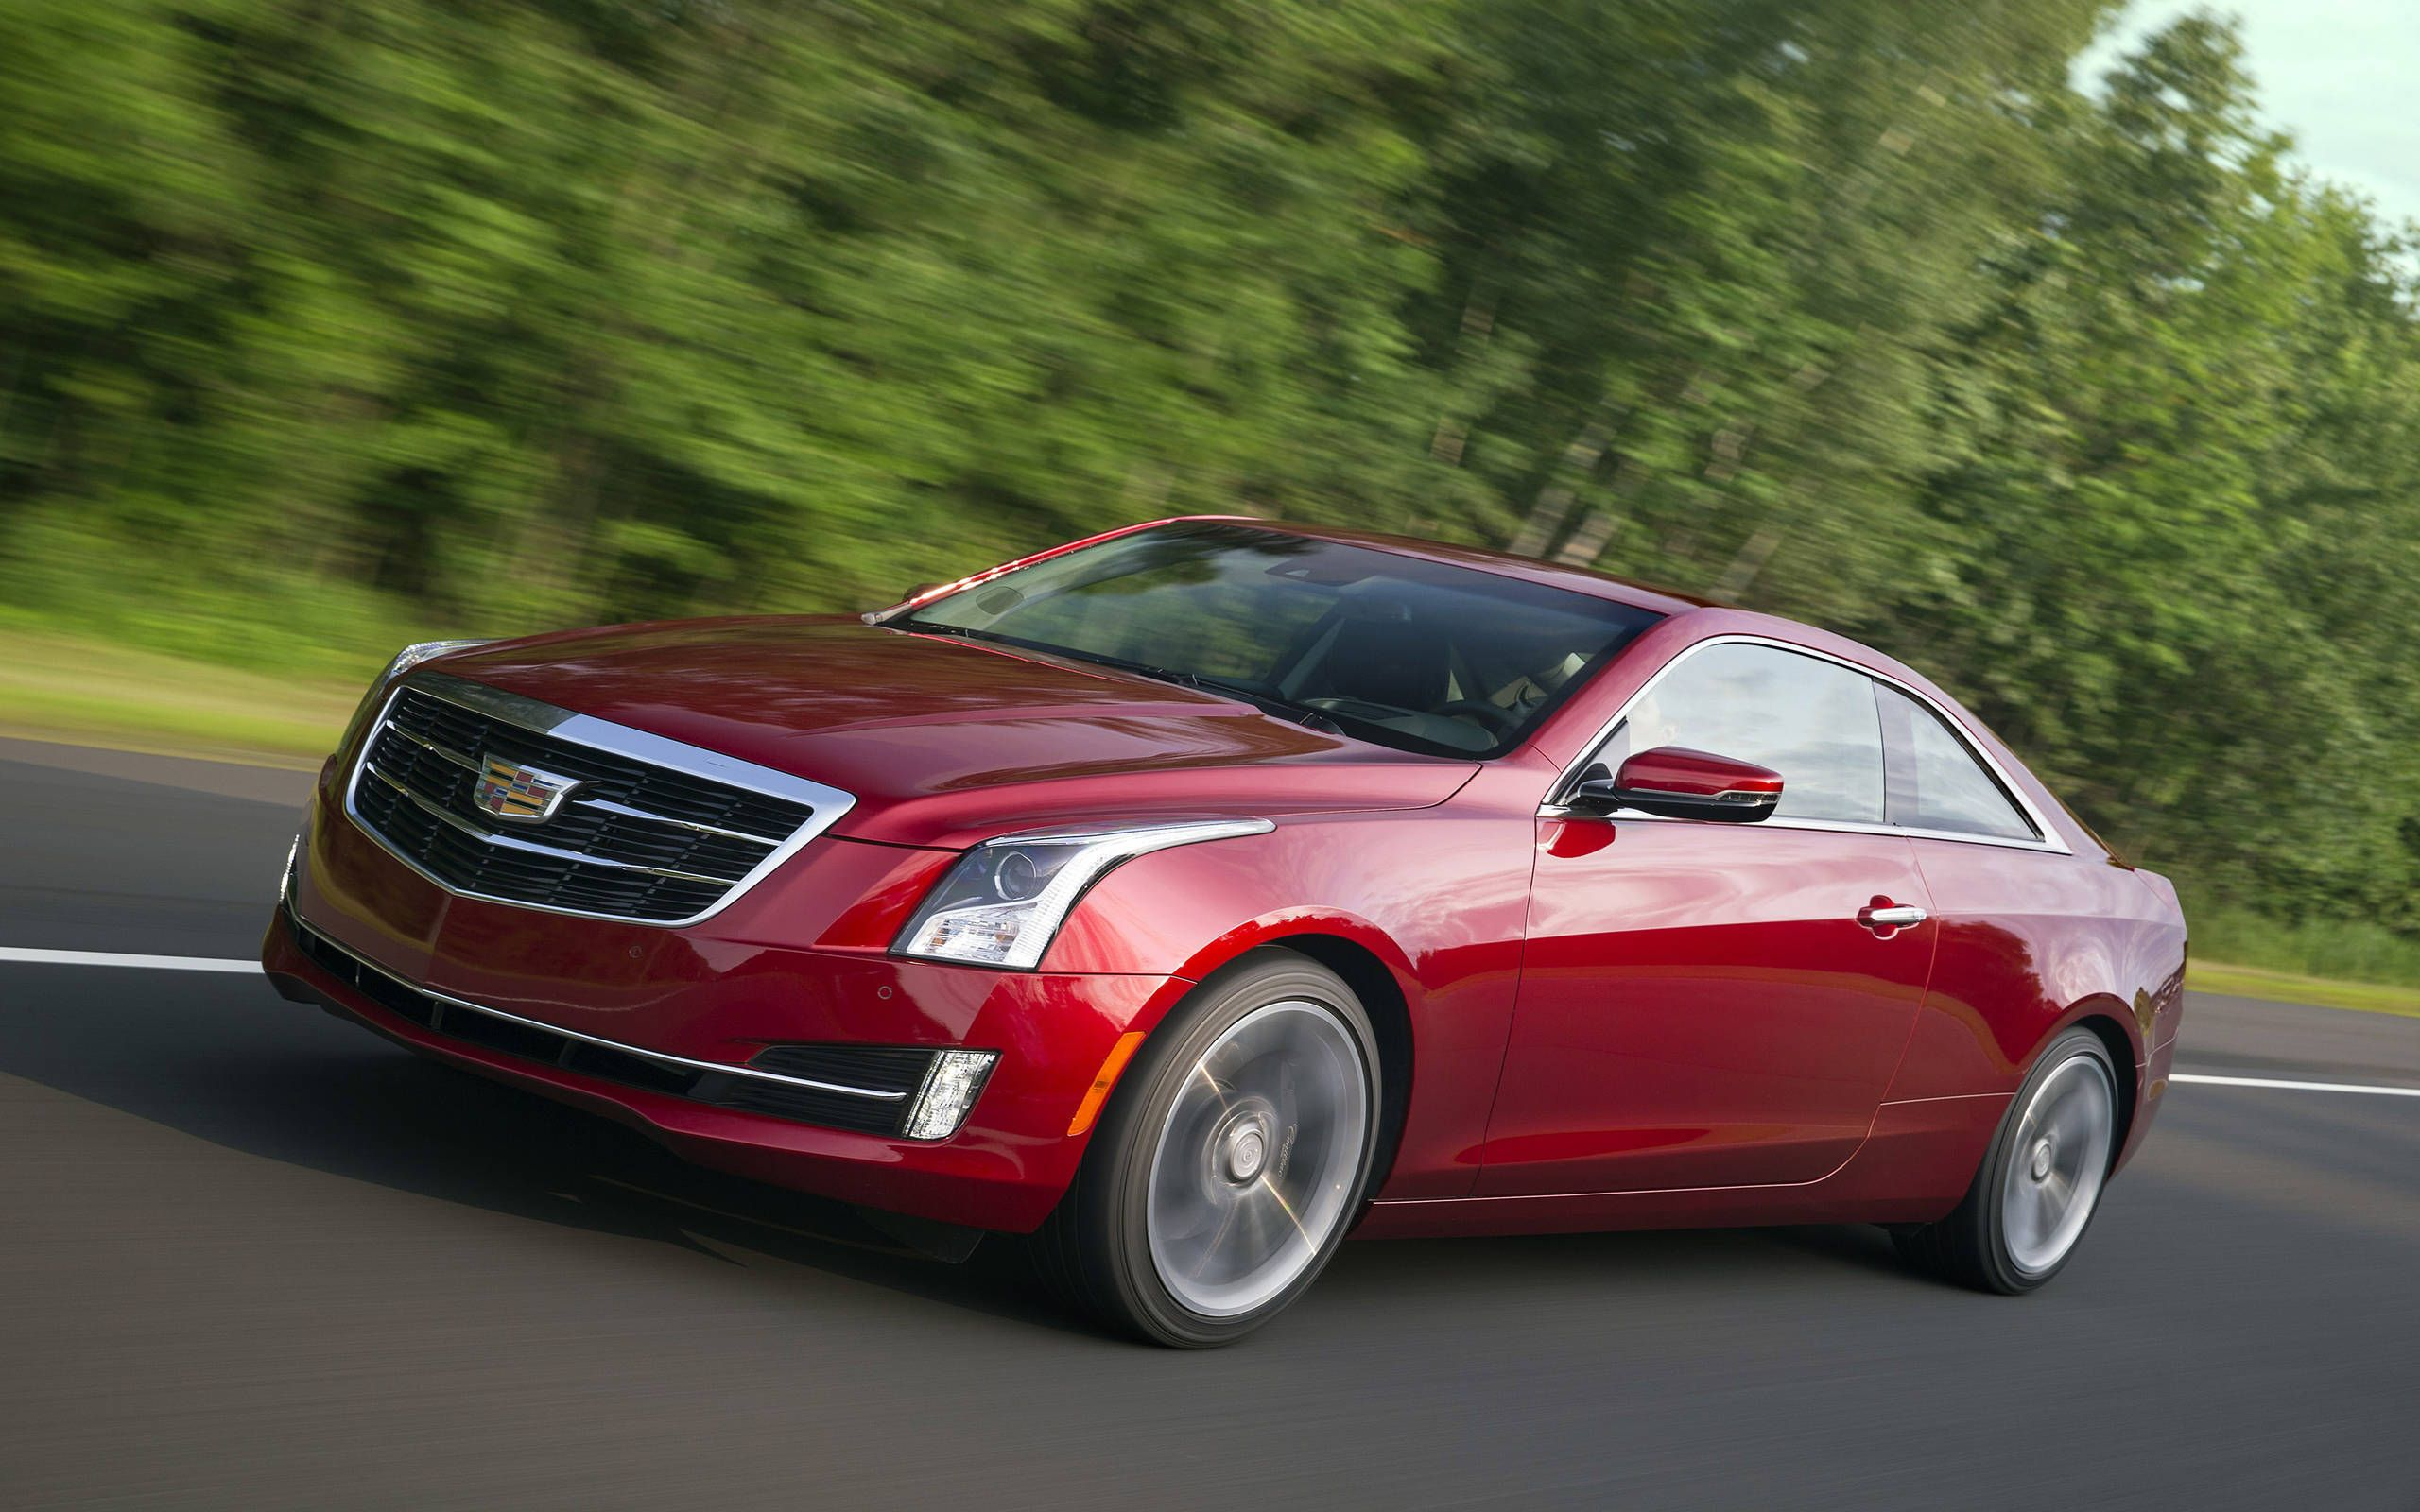 2016 Cadillac Ats Coupe Review Notes Best Looking Luxury Coupe